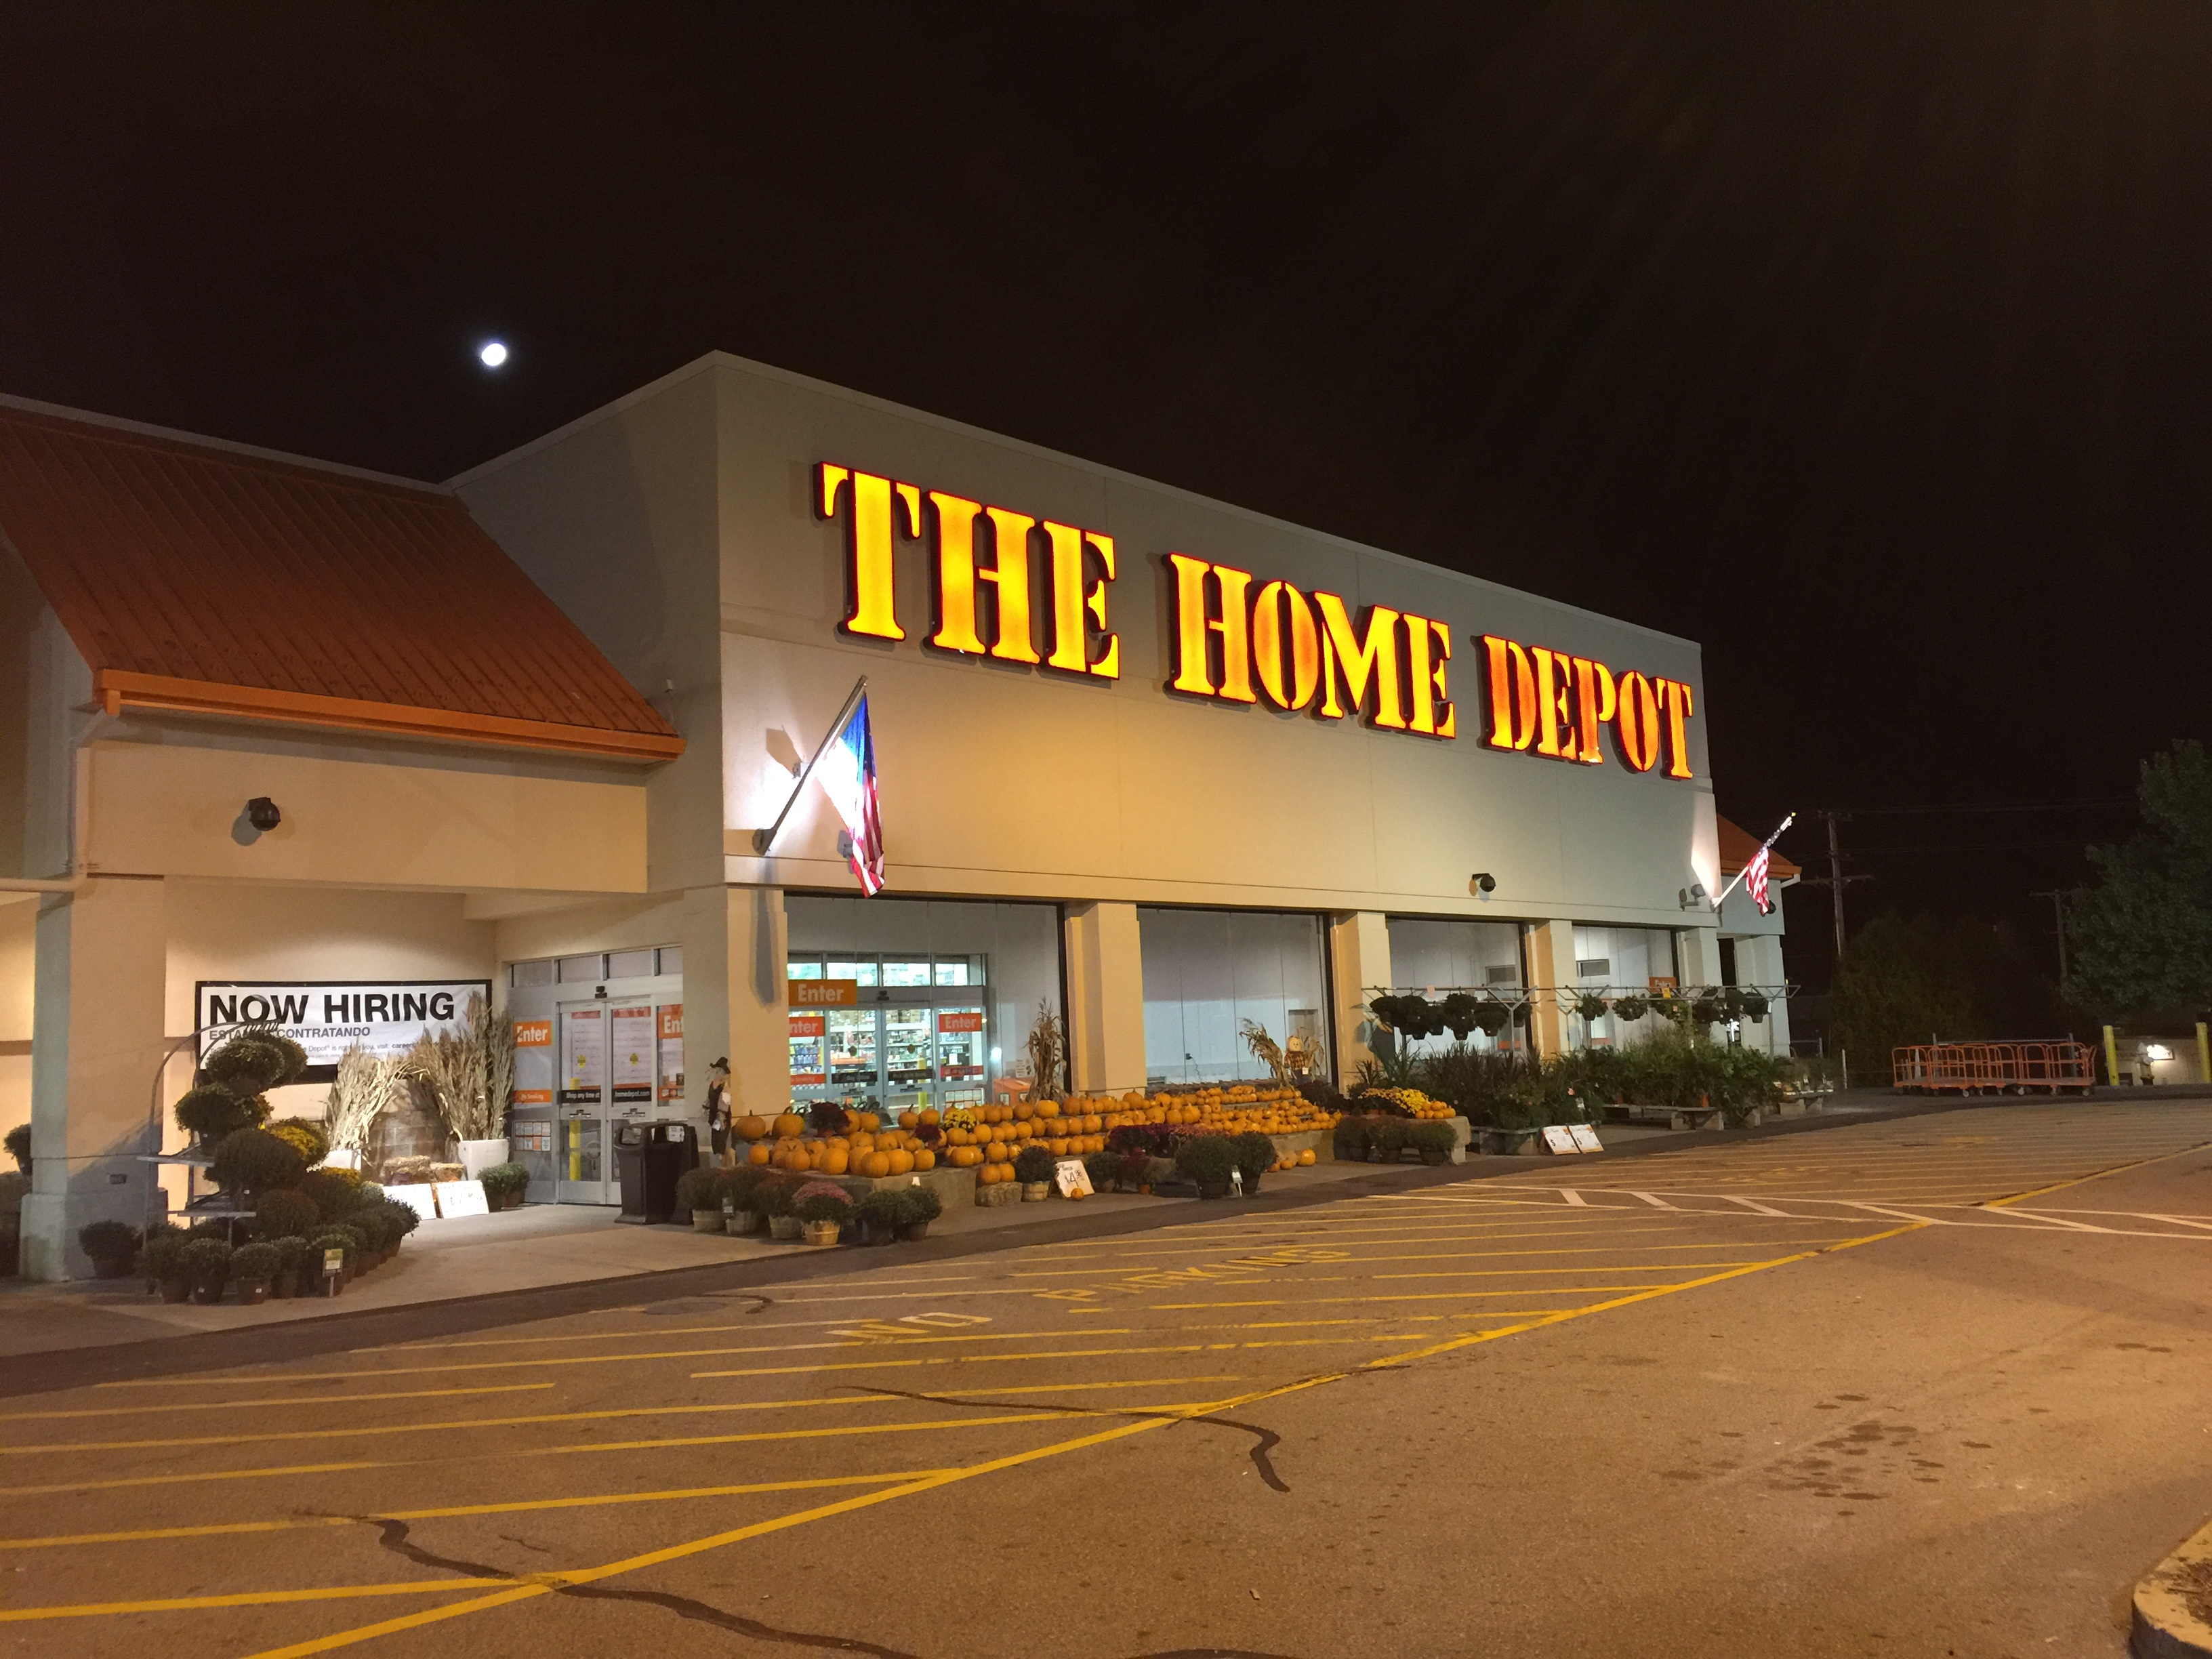 Home Depot Goleta Home Depot Garden City Ks Find Wholesale 100 Home Depot Shopping Home Depot